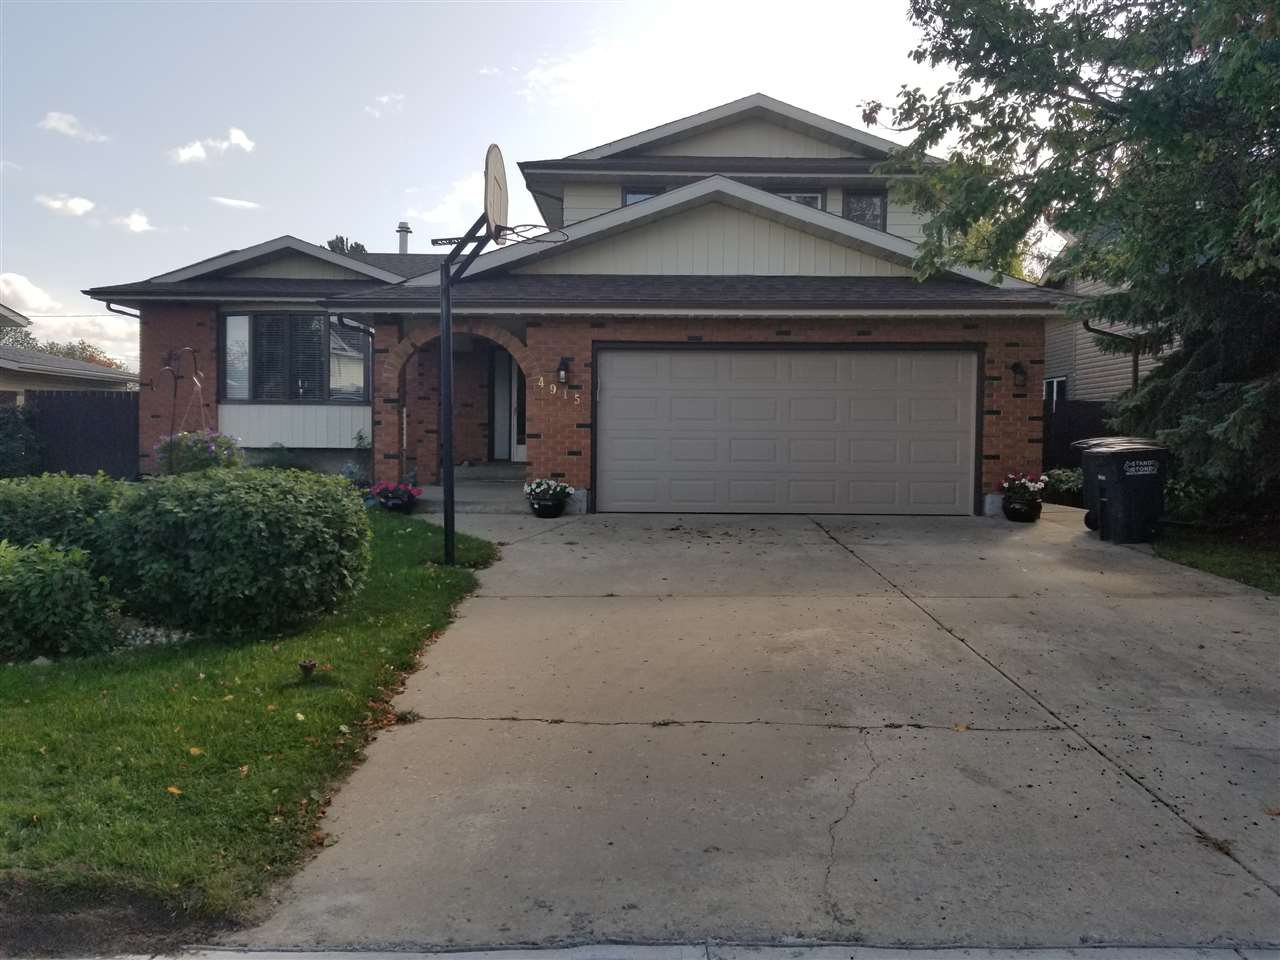 Main Photo: 4915 52 Avenue: Redwater House for sale : MLS®# E4174503